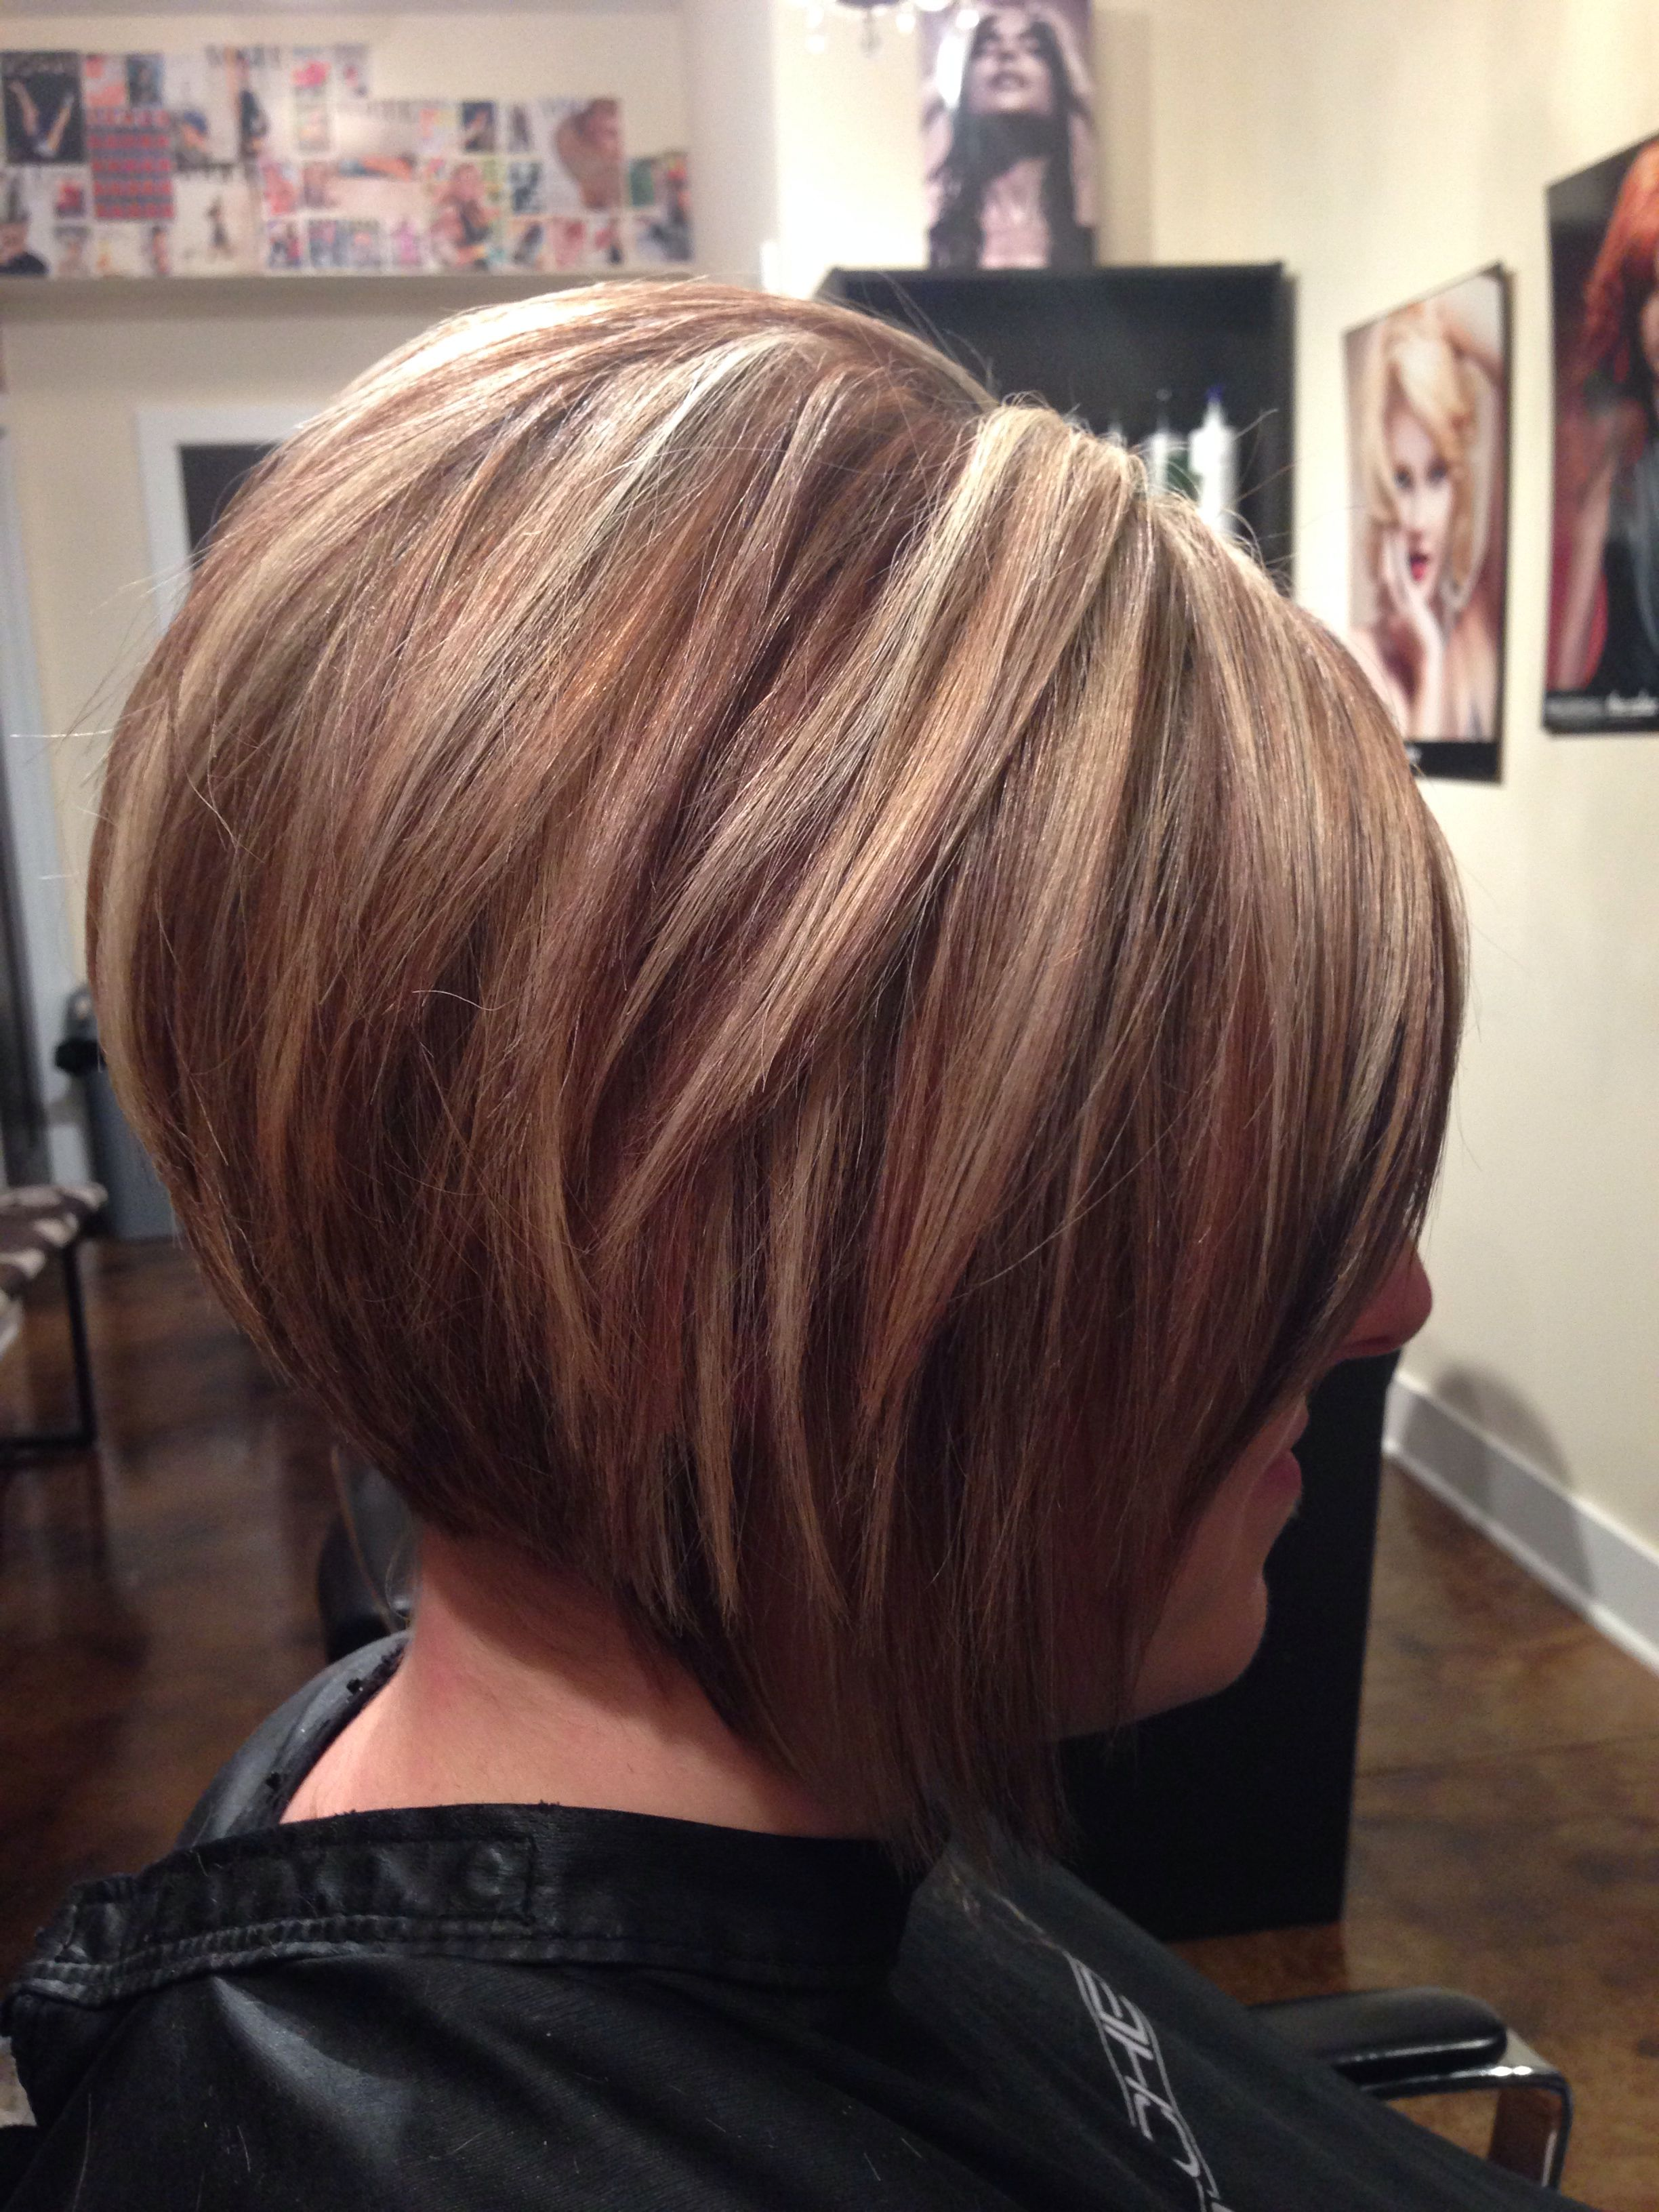 paul mitchell hair style paul mitchell shines xg hair by licari salon 4190 | f8ebaaf1ebbd1abf81a638b4ddb27d94